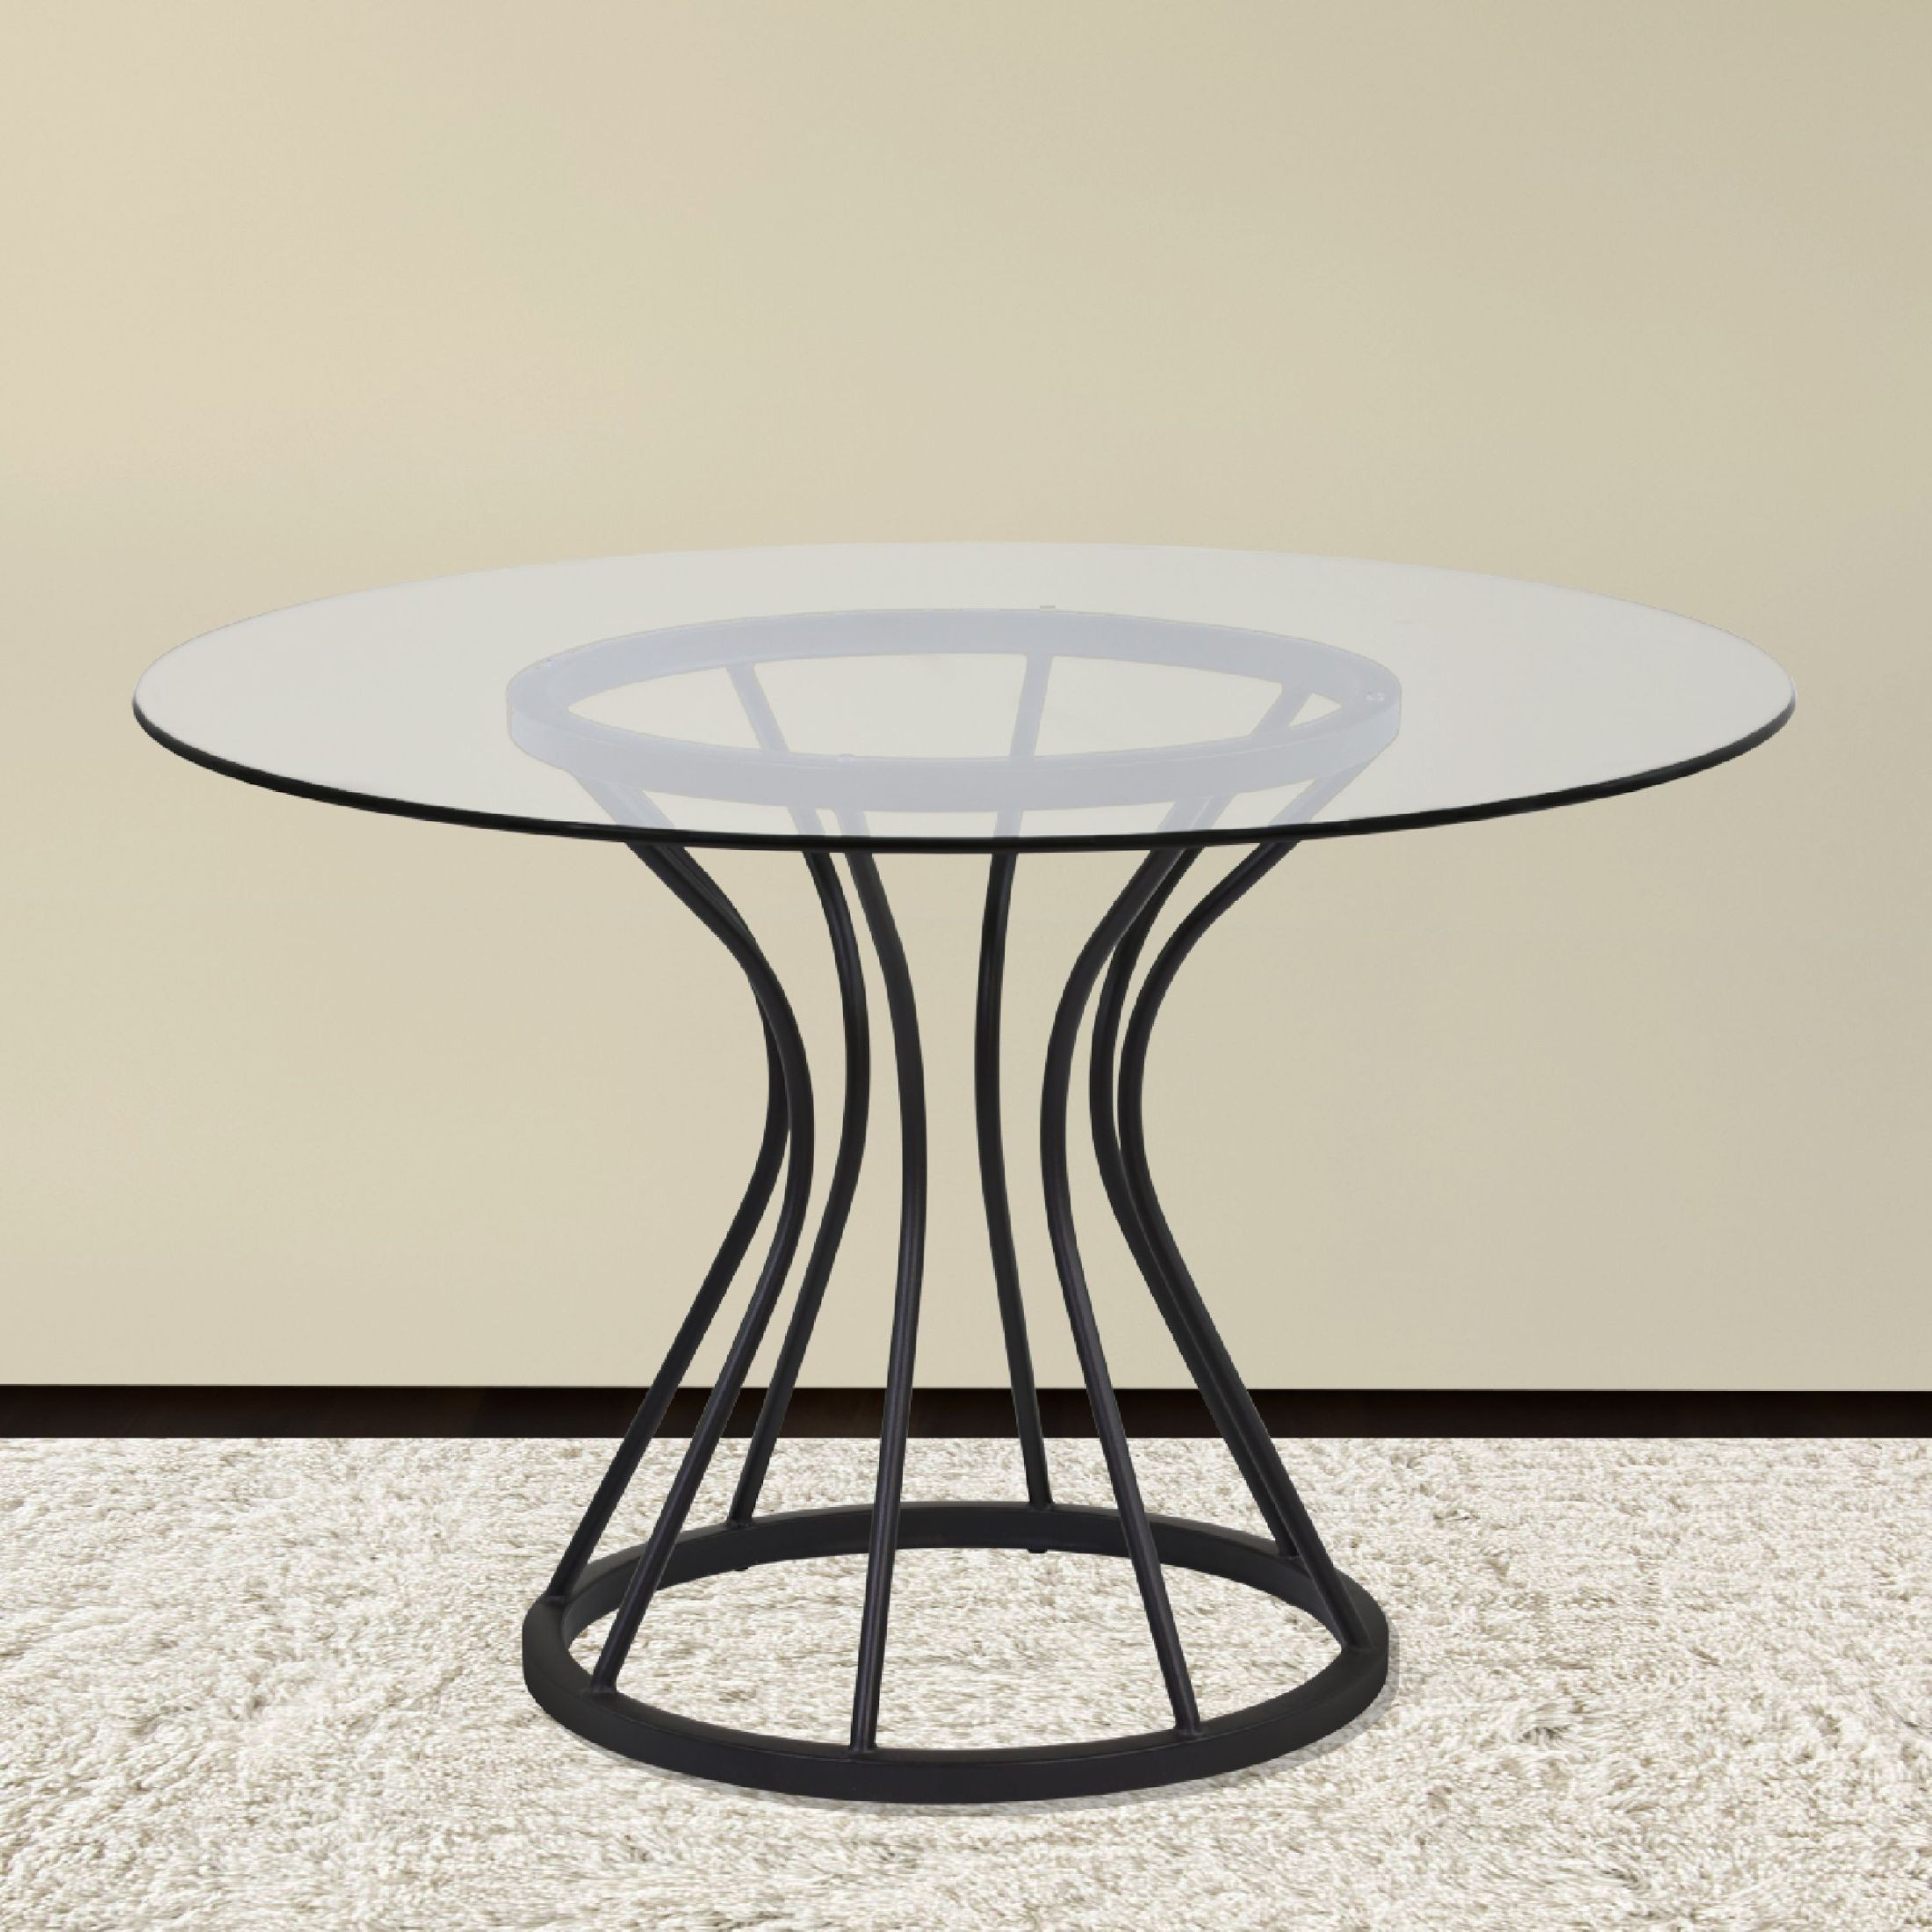 "Round Glass Kitchen Tables: Zurich Black 48"" Glass Round Dining Table, LCZUDITOCLGL"